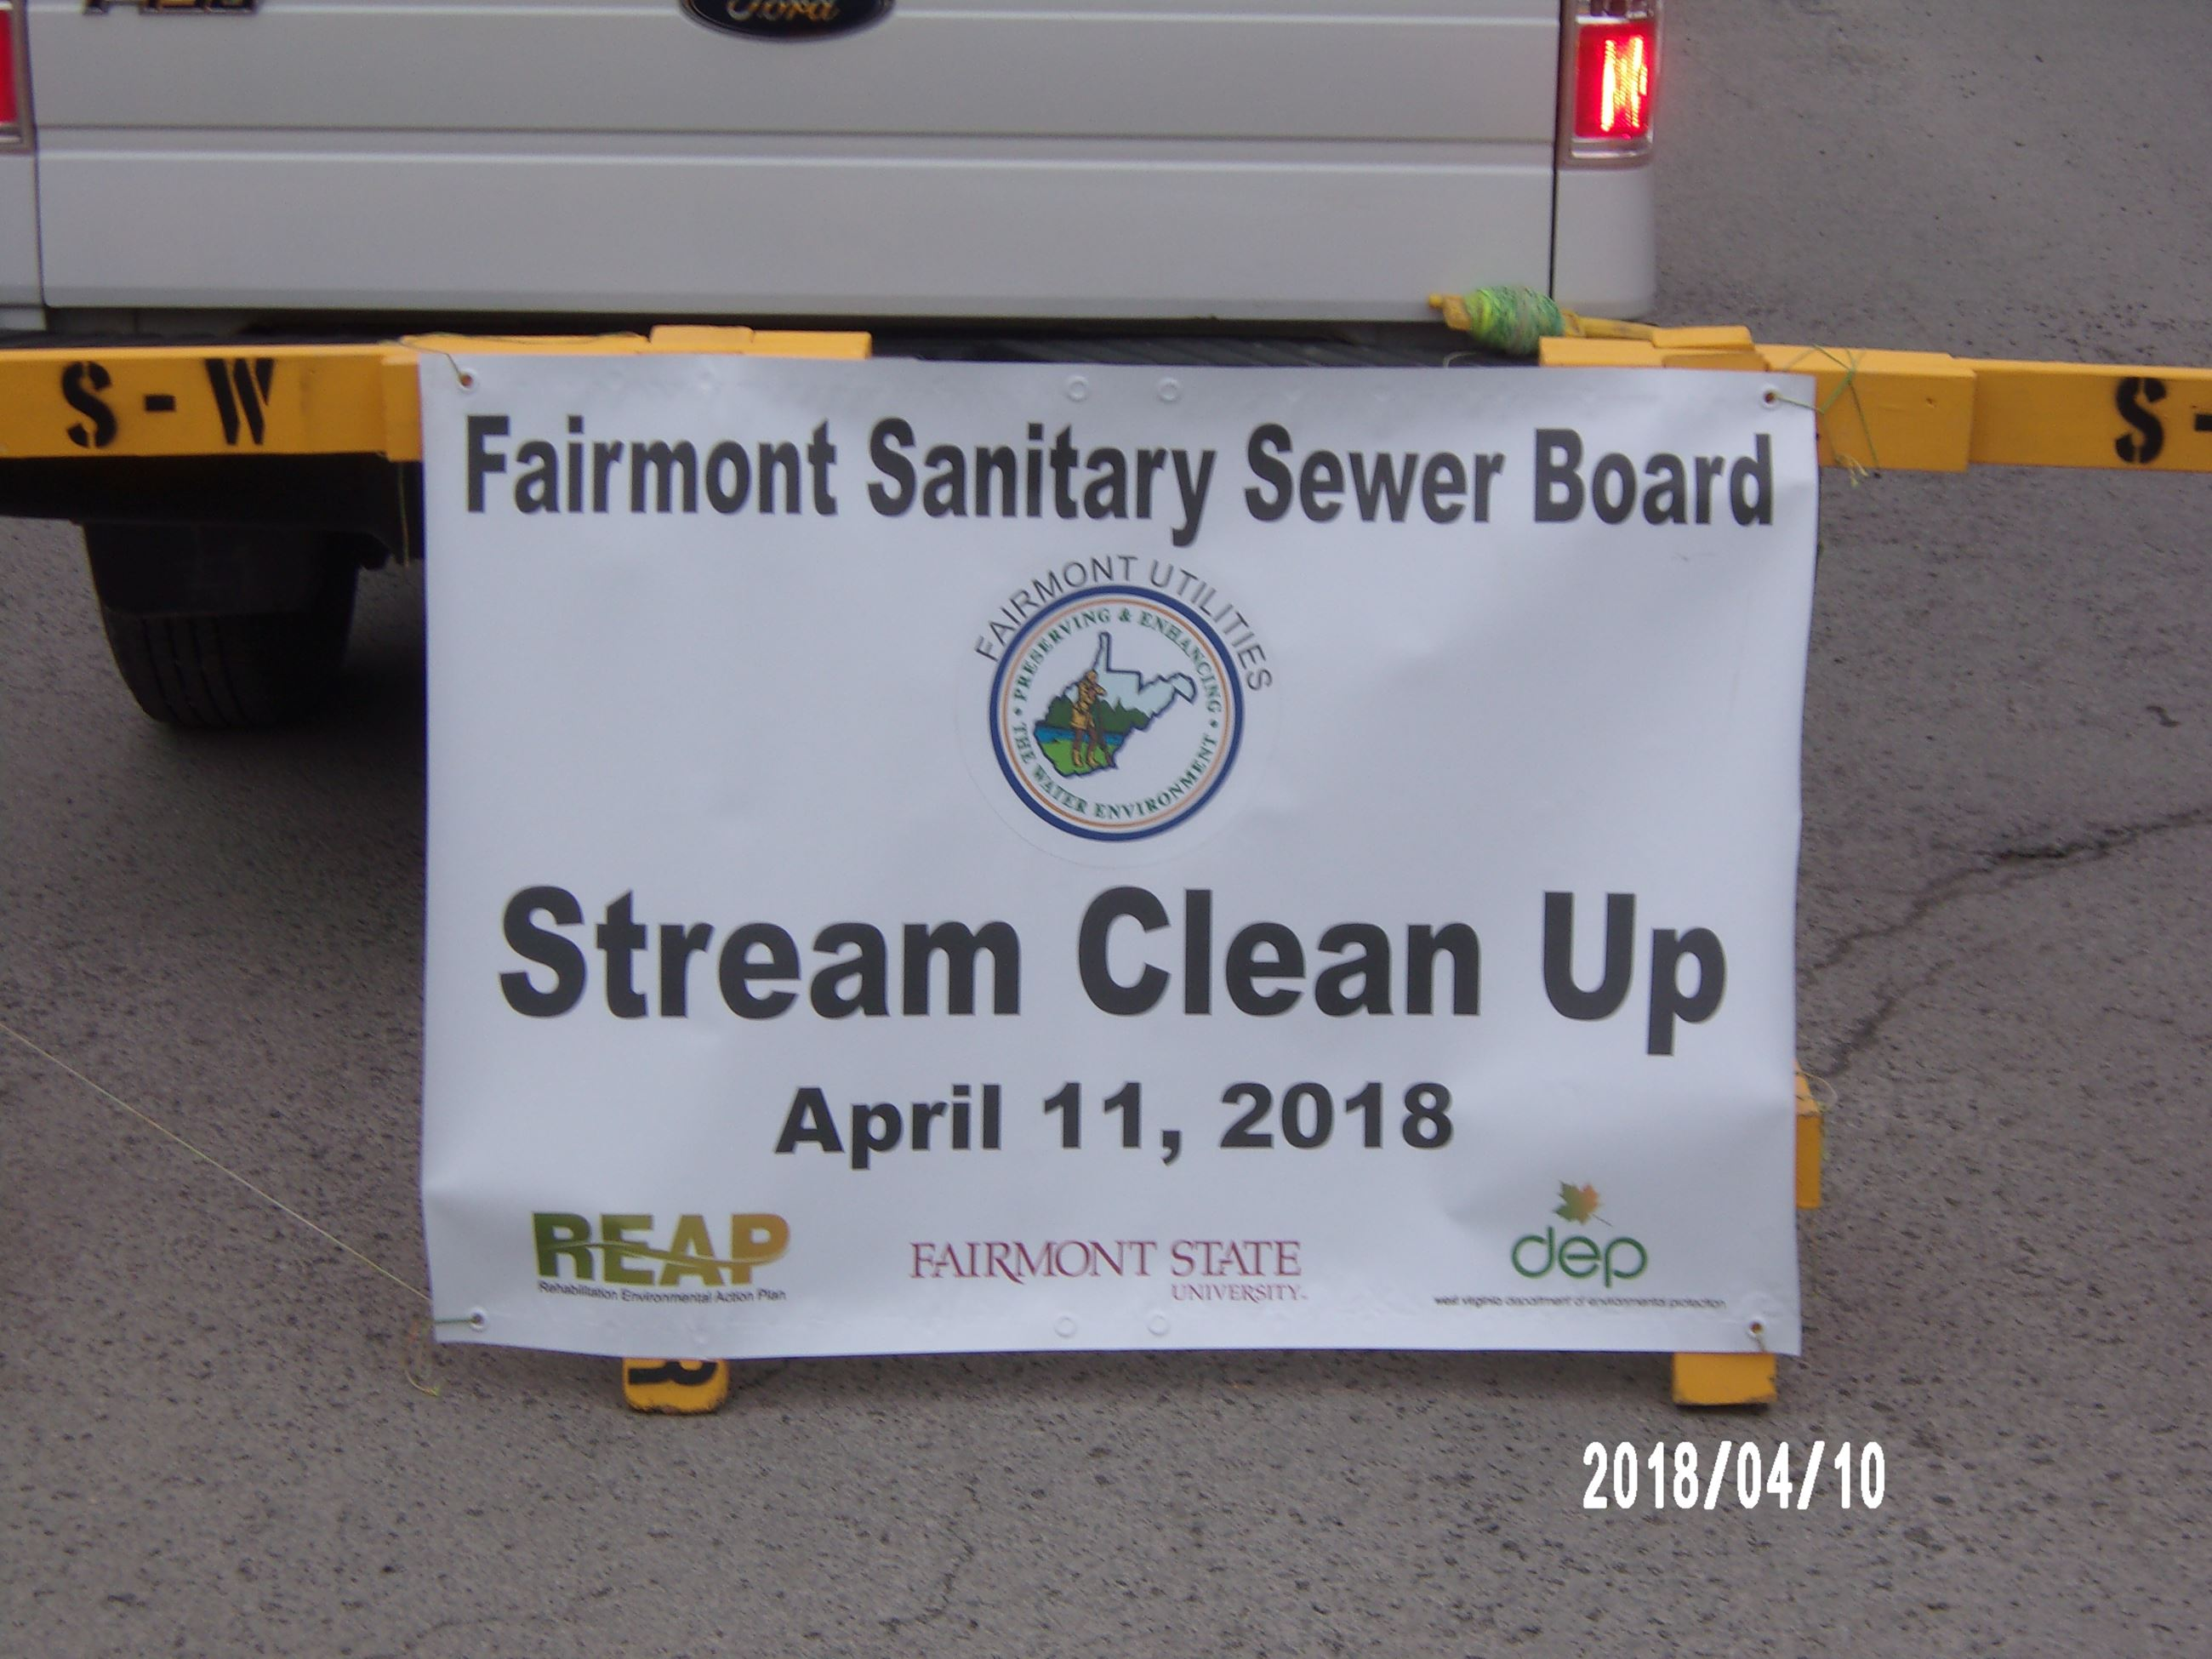 Fairmont Sanitary Sewer Board Stream Clean Up Sign